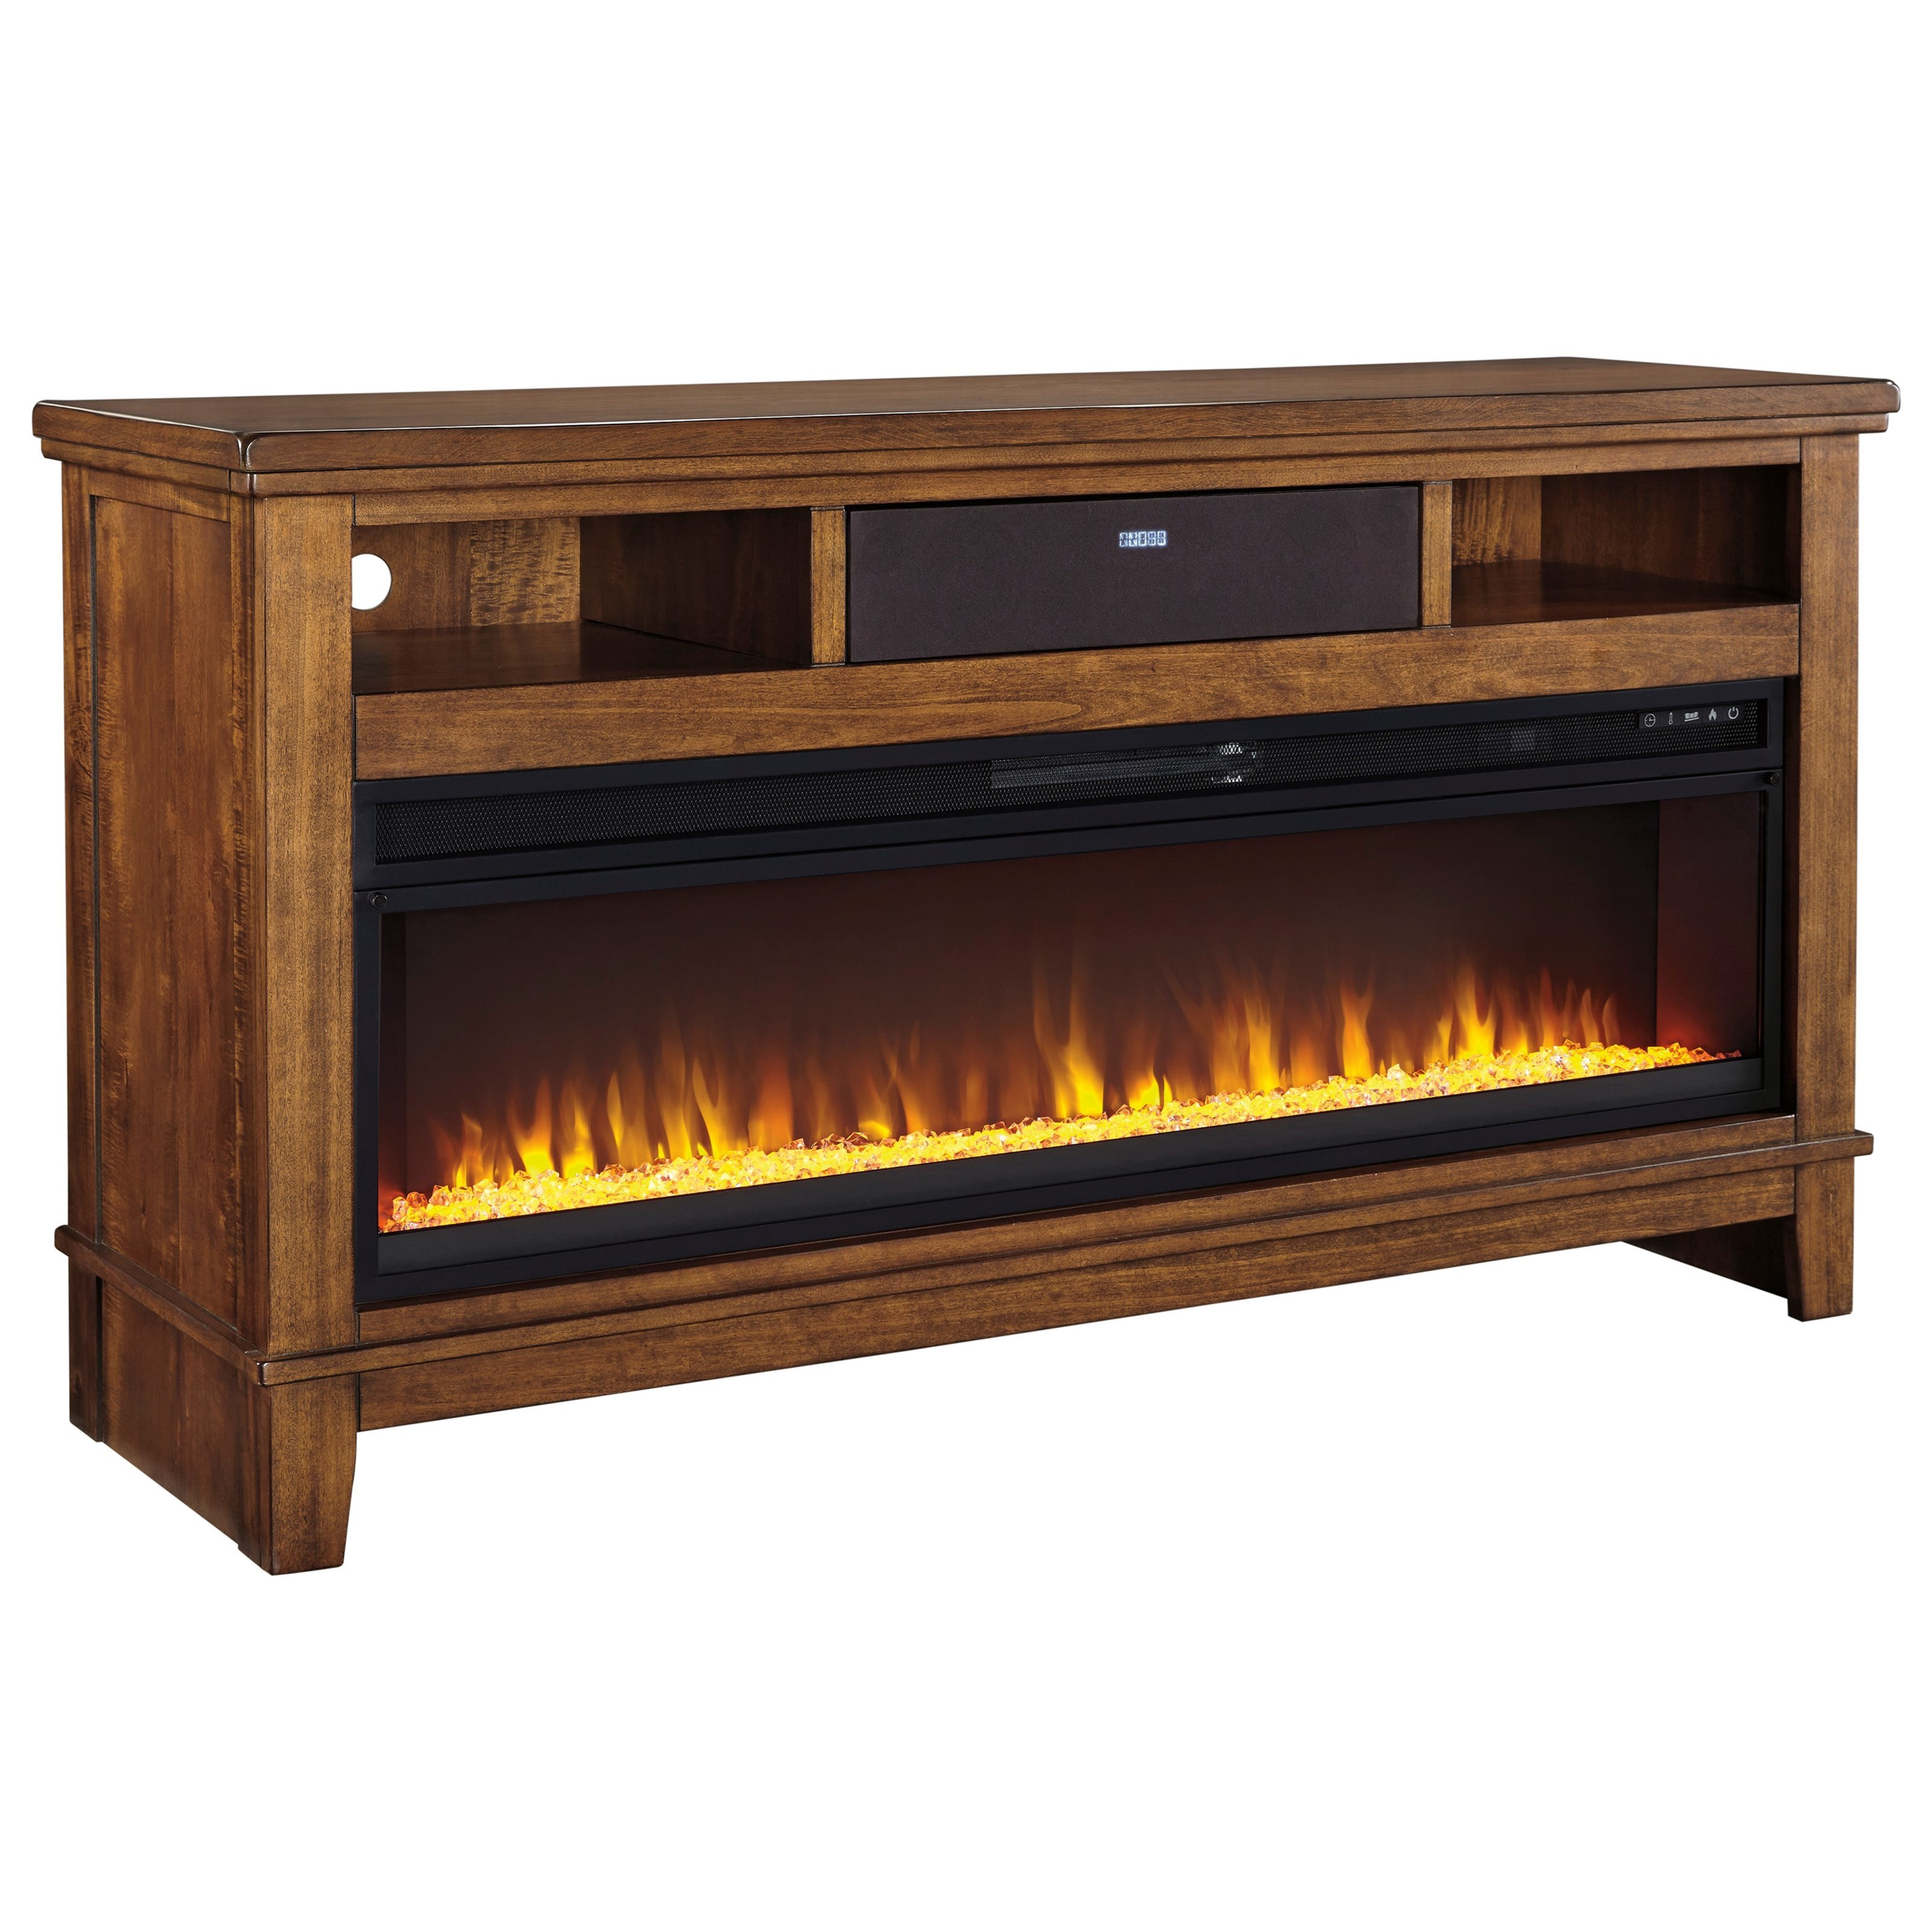 Signature Design by Ashley Ralene TV Stand w/ Fireplace Insert & BT Speaker - Item Number: W594-68+W100-22+31